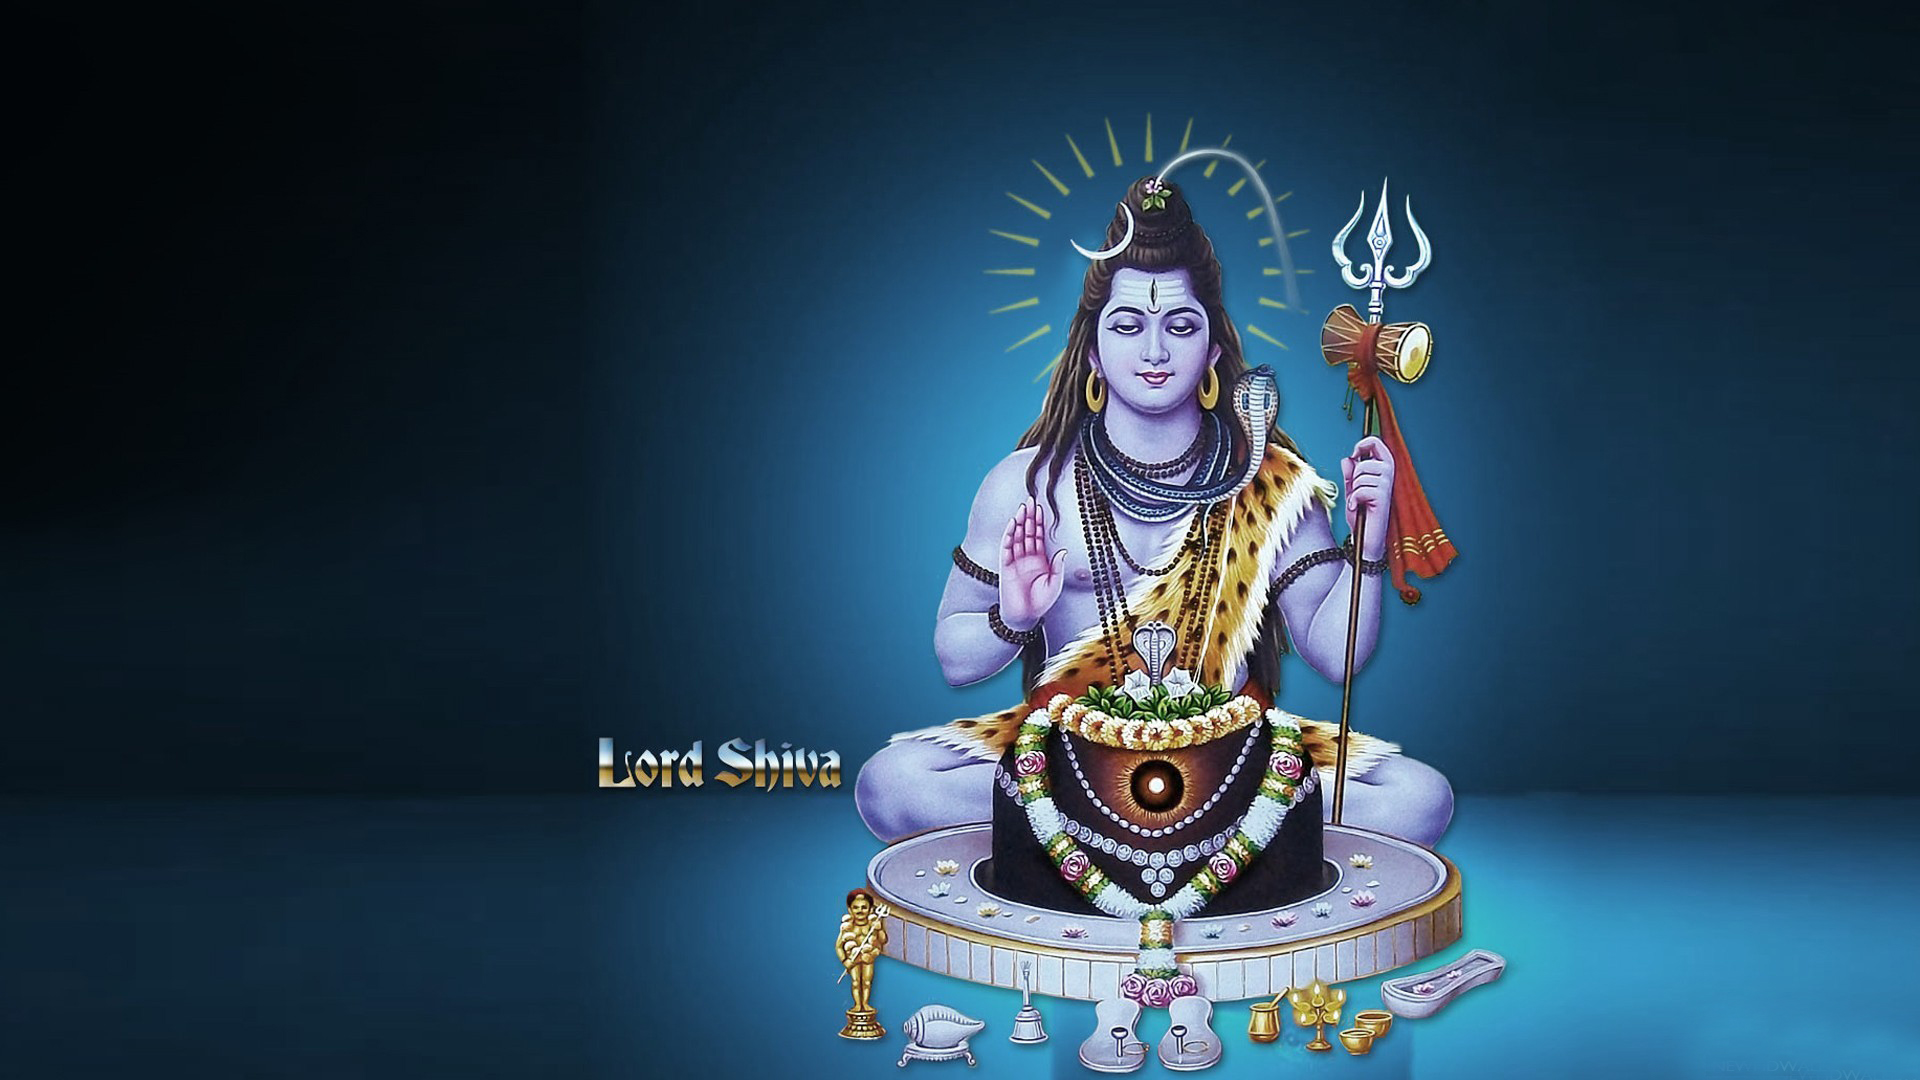 Best 51 Shiva Wallpapers On Hipwallpaper Shiva God Wallpaper Shiva Wallpapers And Powerful Lord Shiva Wallpapers